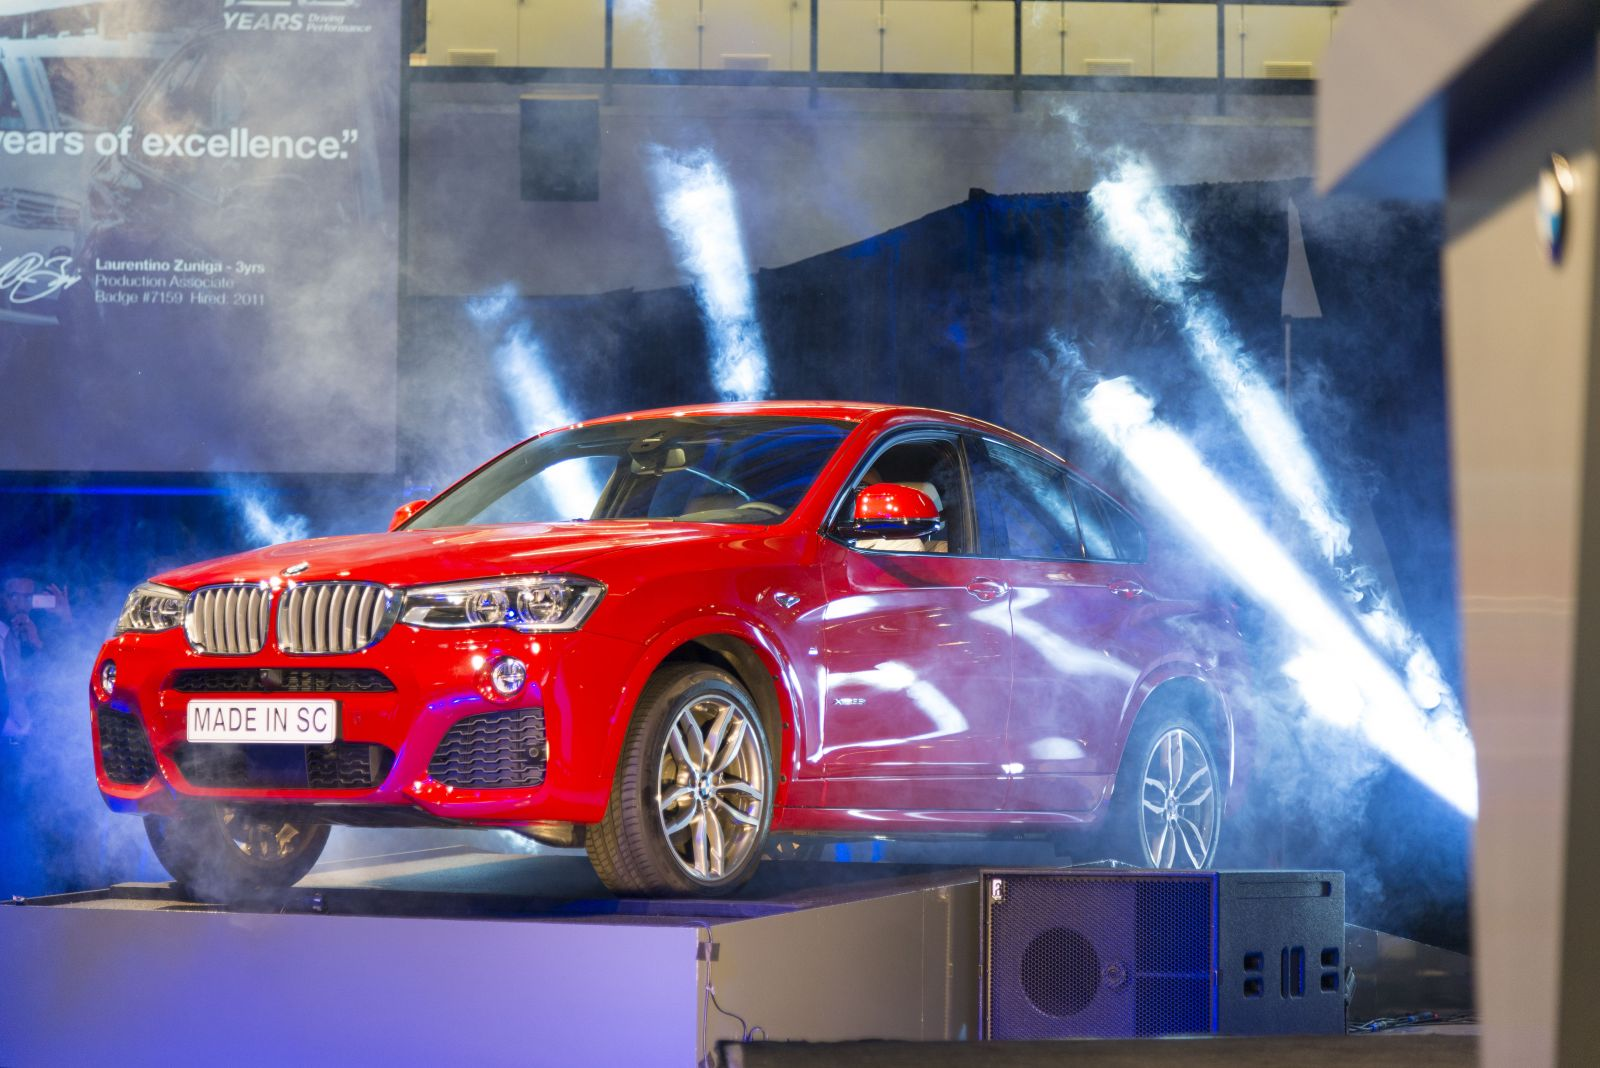 The all-new BMW X4 made in SC revealed